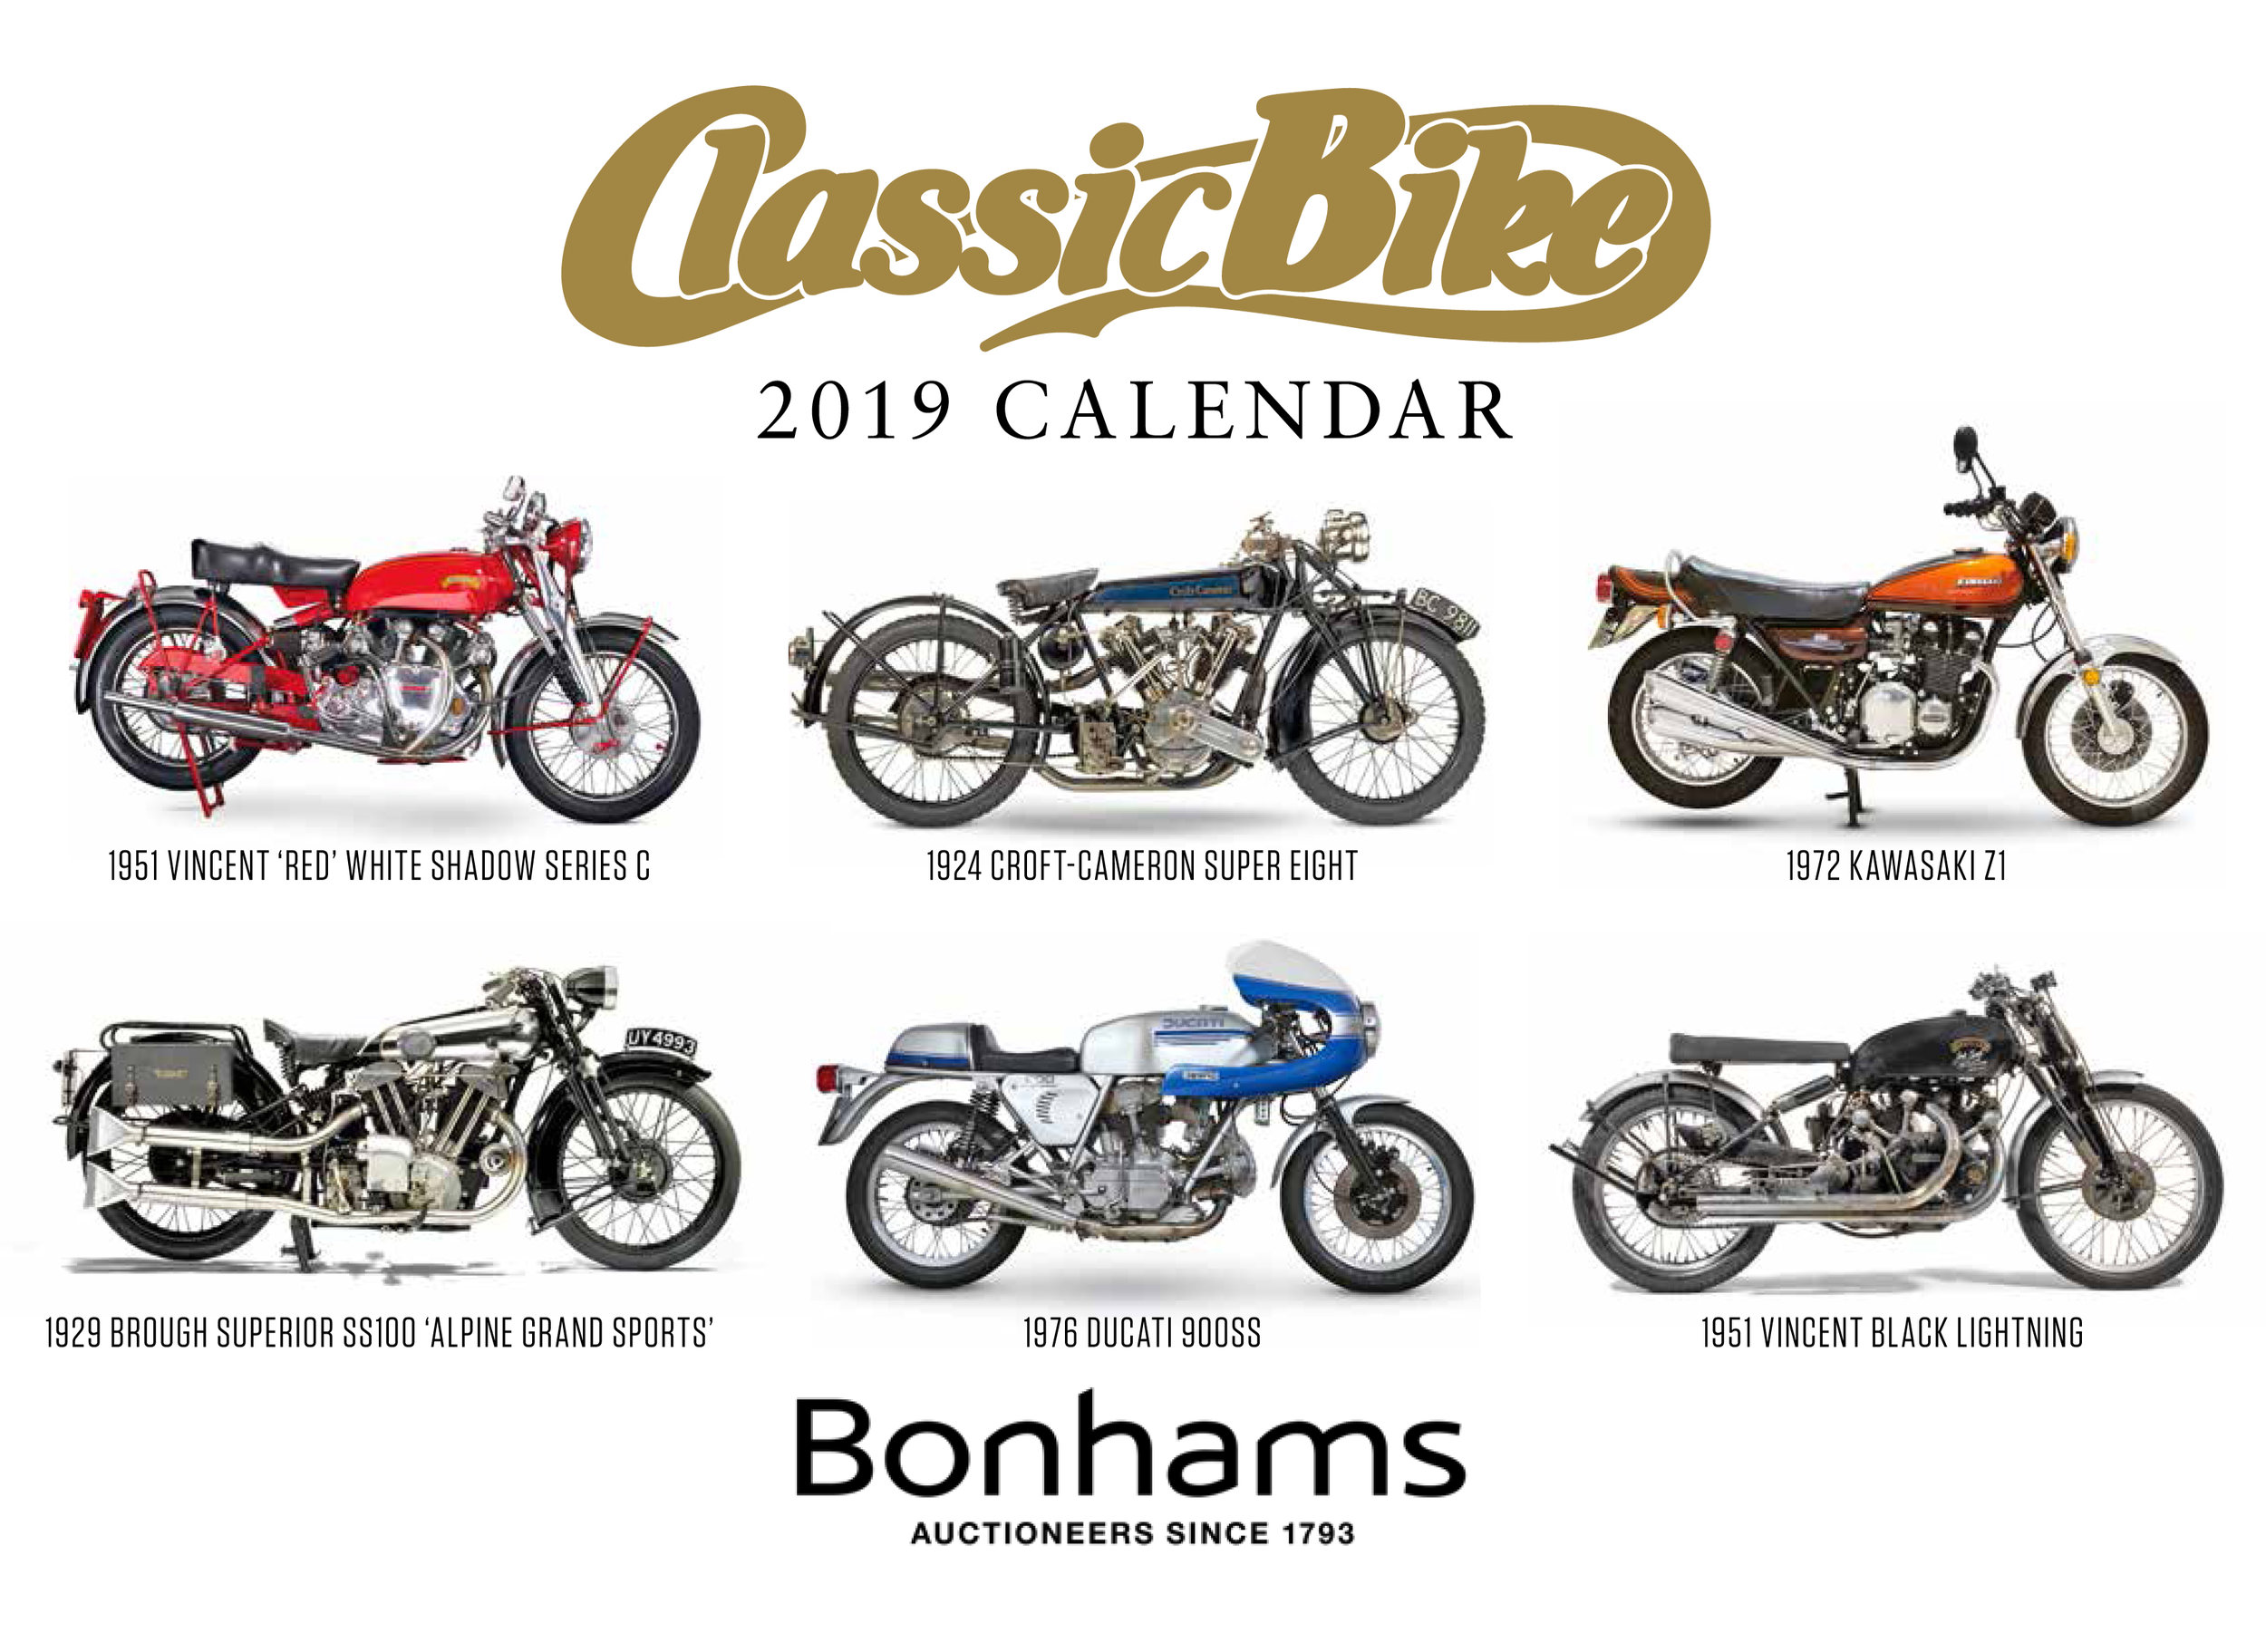 Free calendar with the December '18 issue of Classic Bike